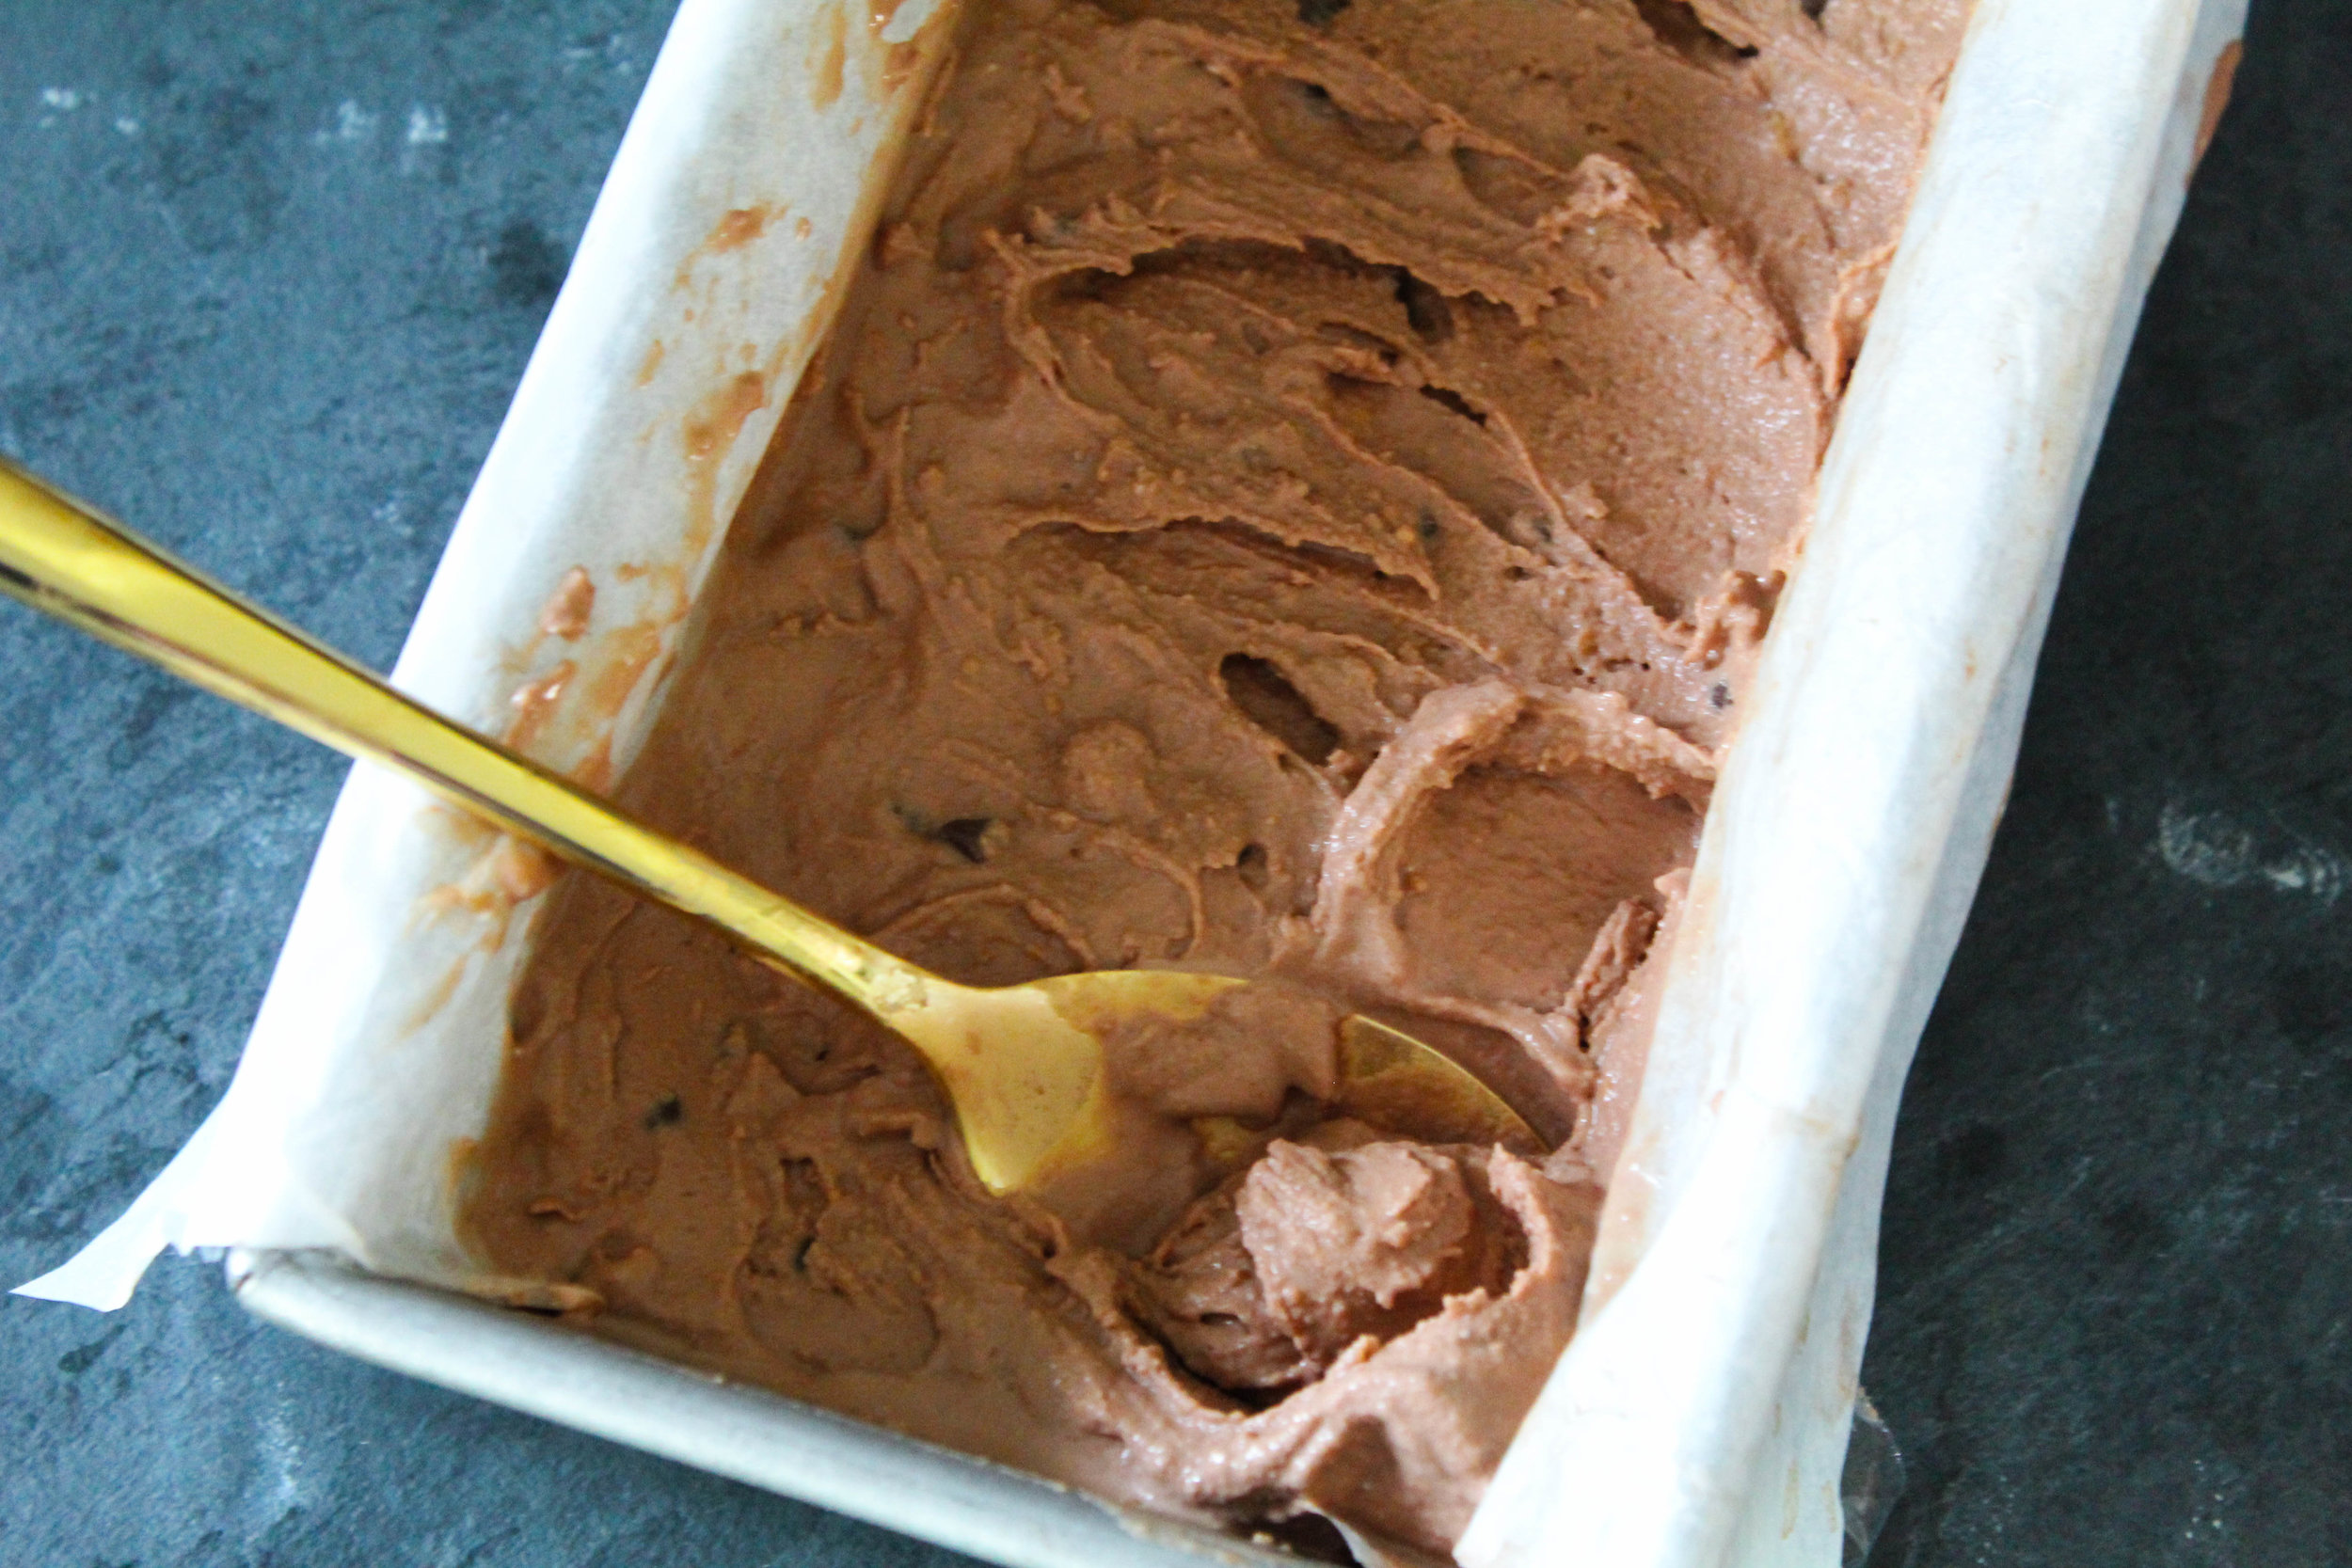 chocolate ice cream 5.jpg